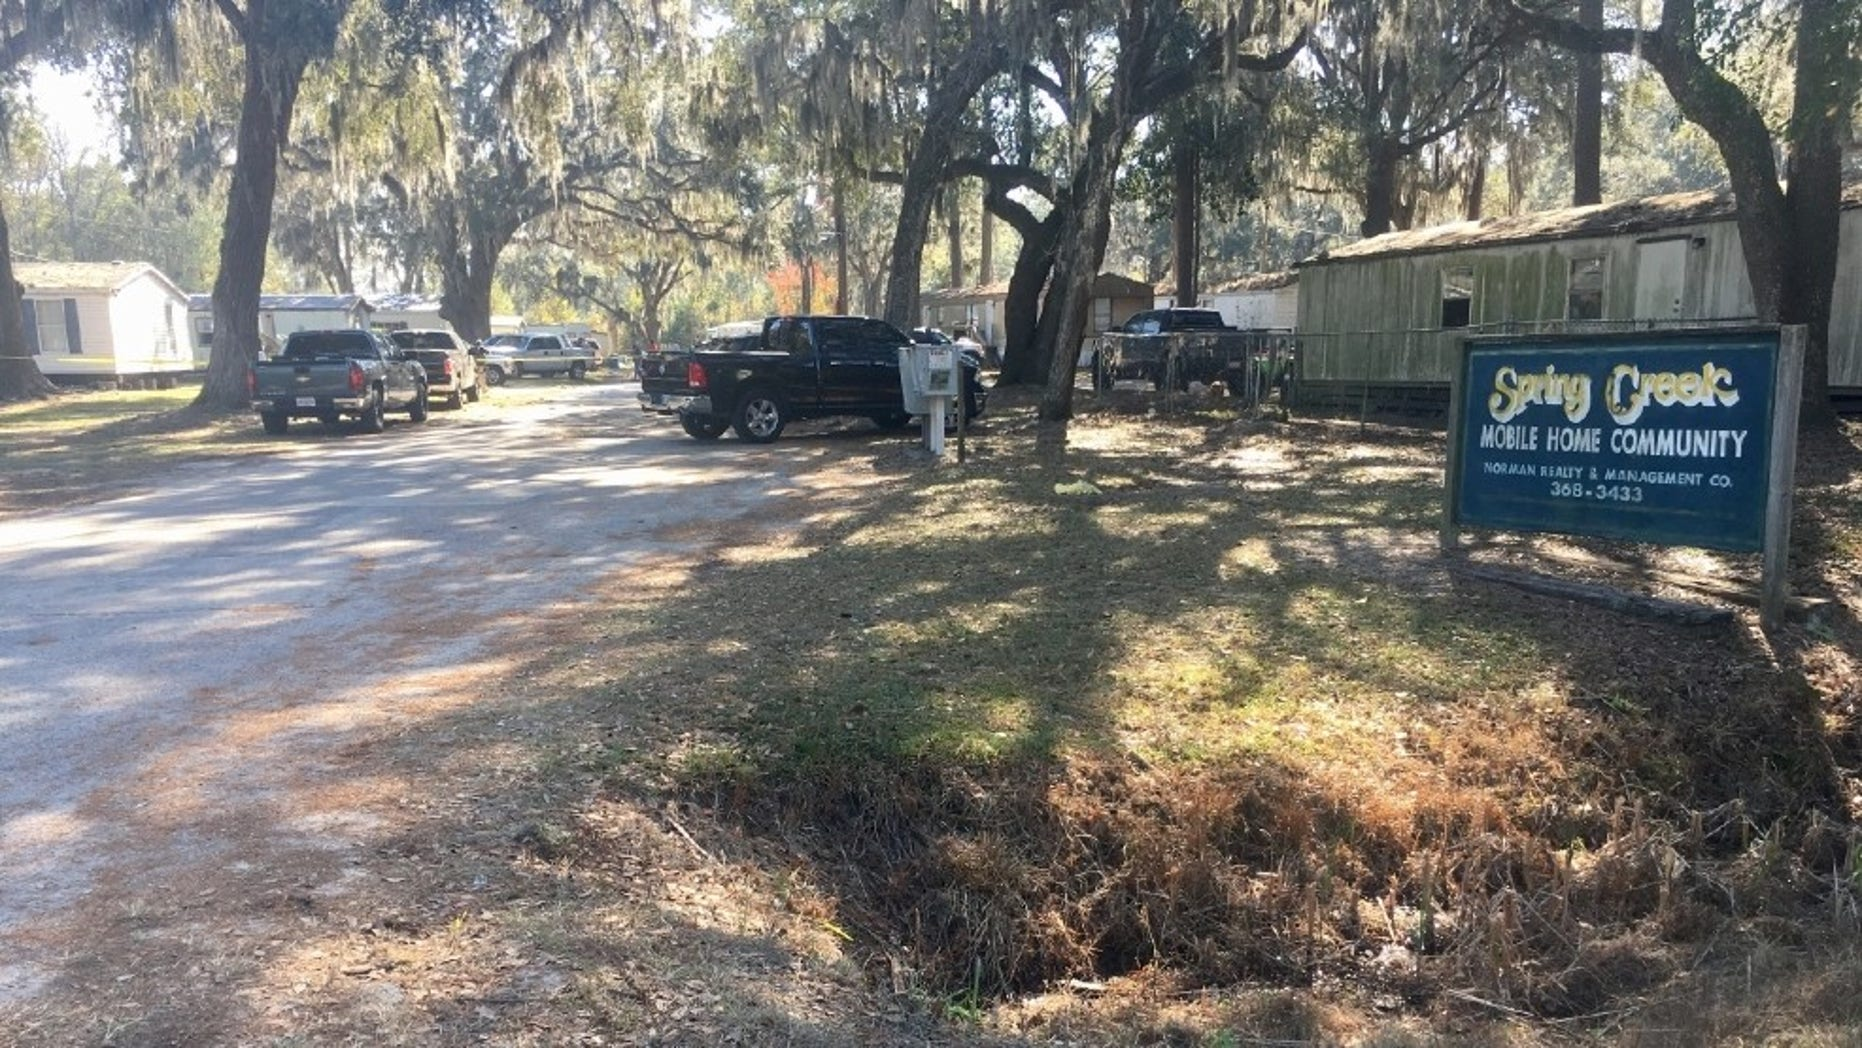 The scene of the shooting in Long County.